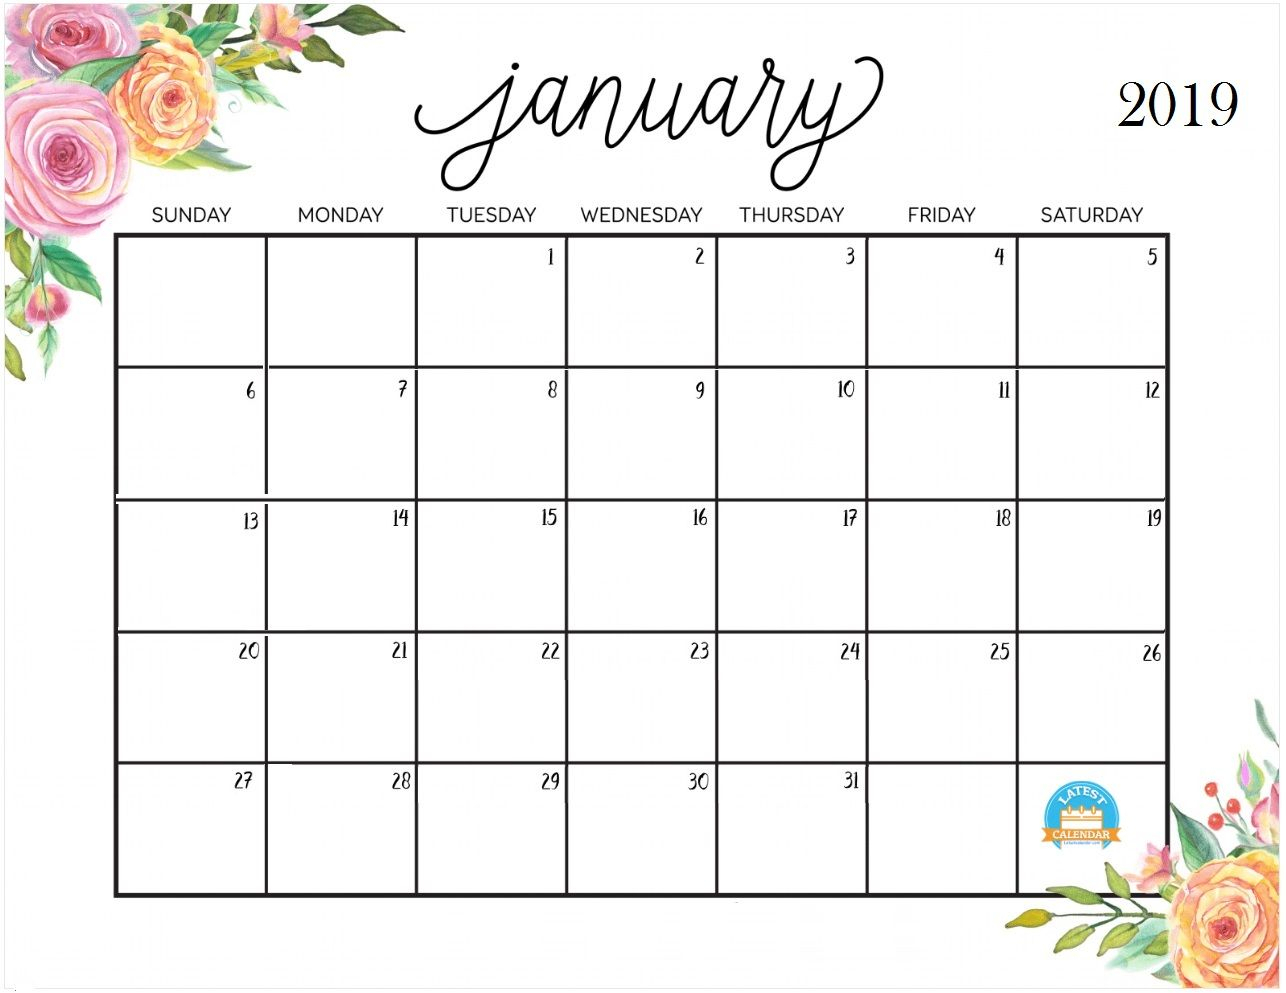 January 2019 Personalized Calendar | July Calendar, August for Personalized Calendar Maker Philippines